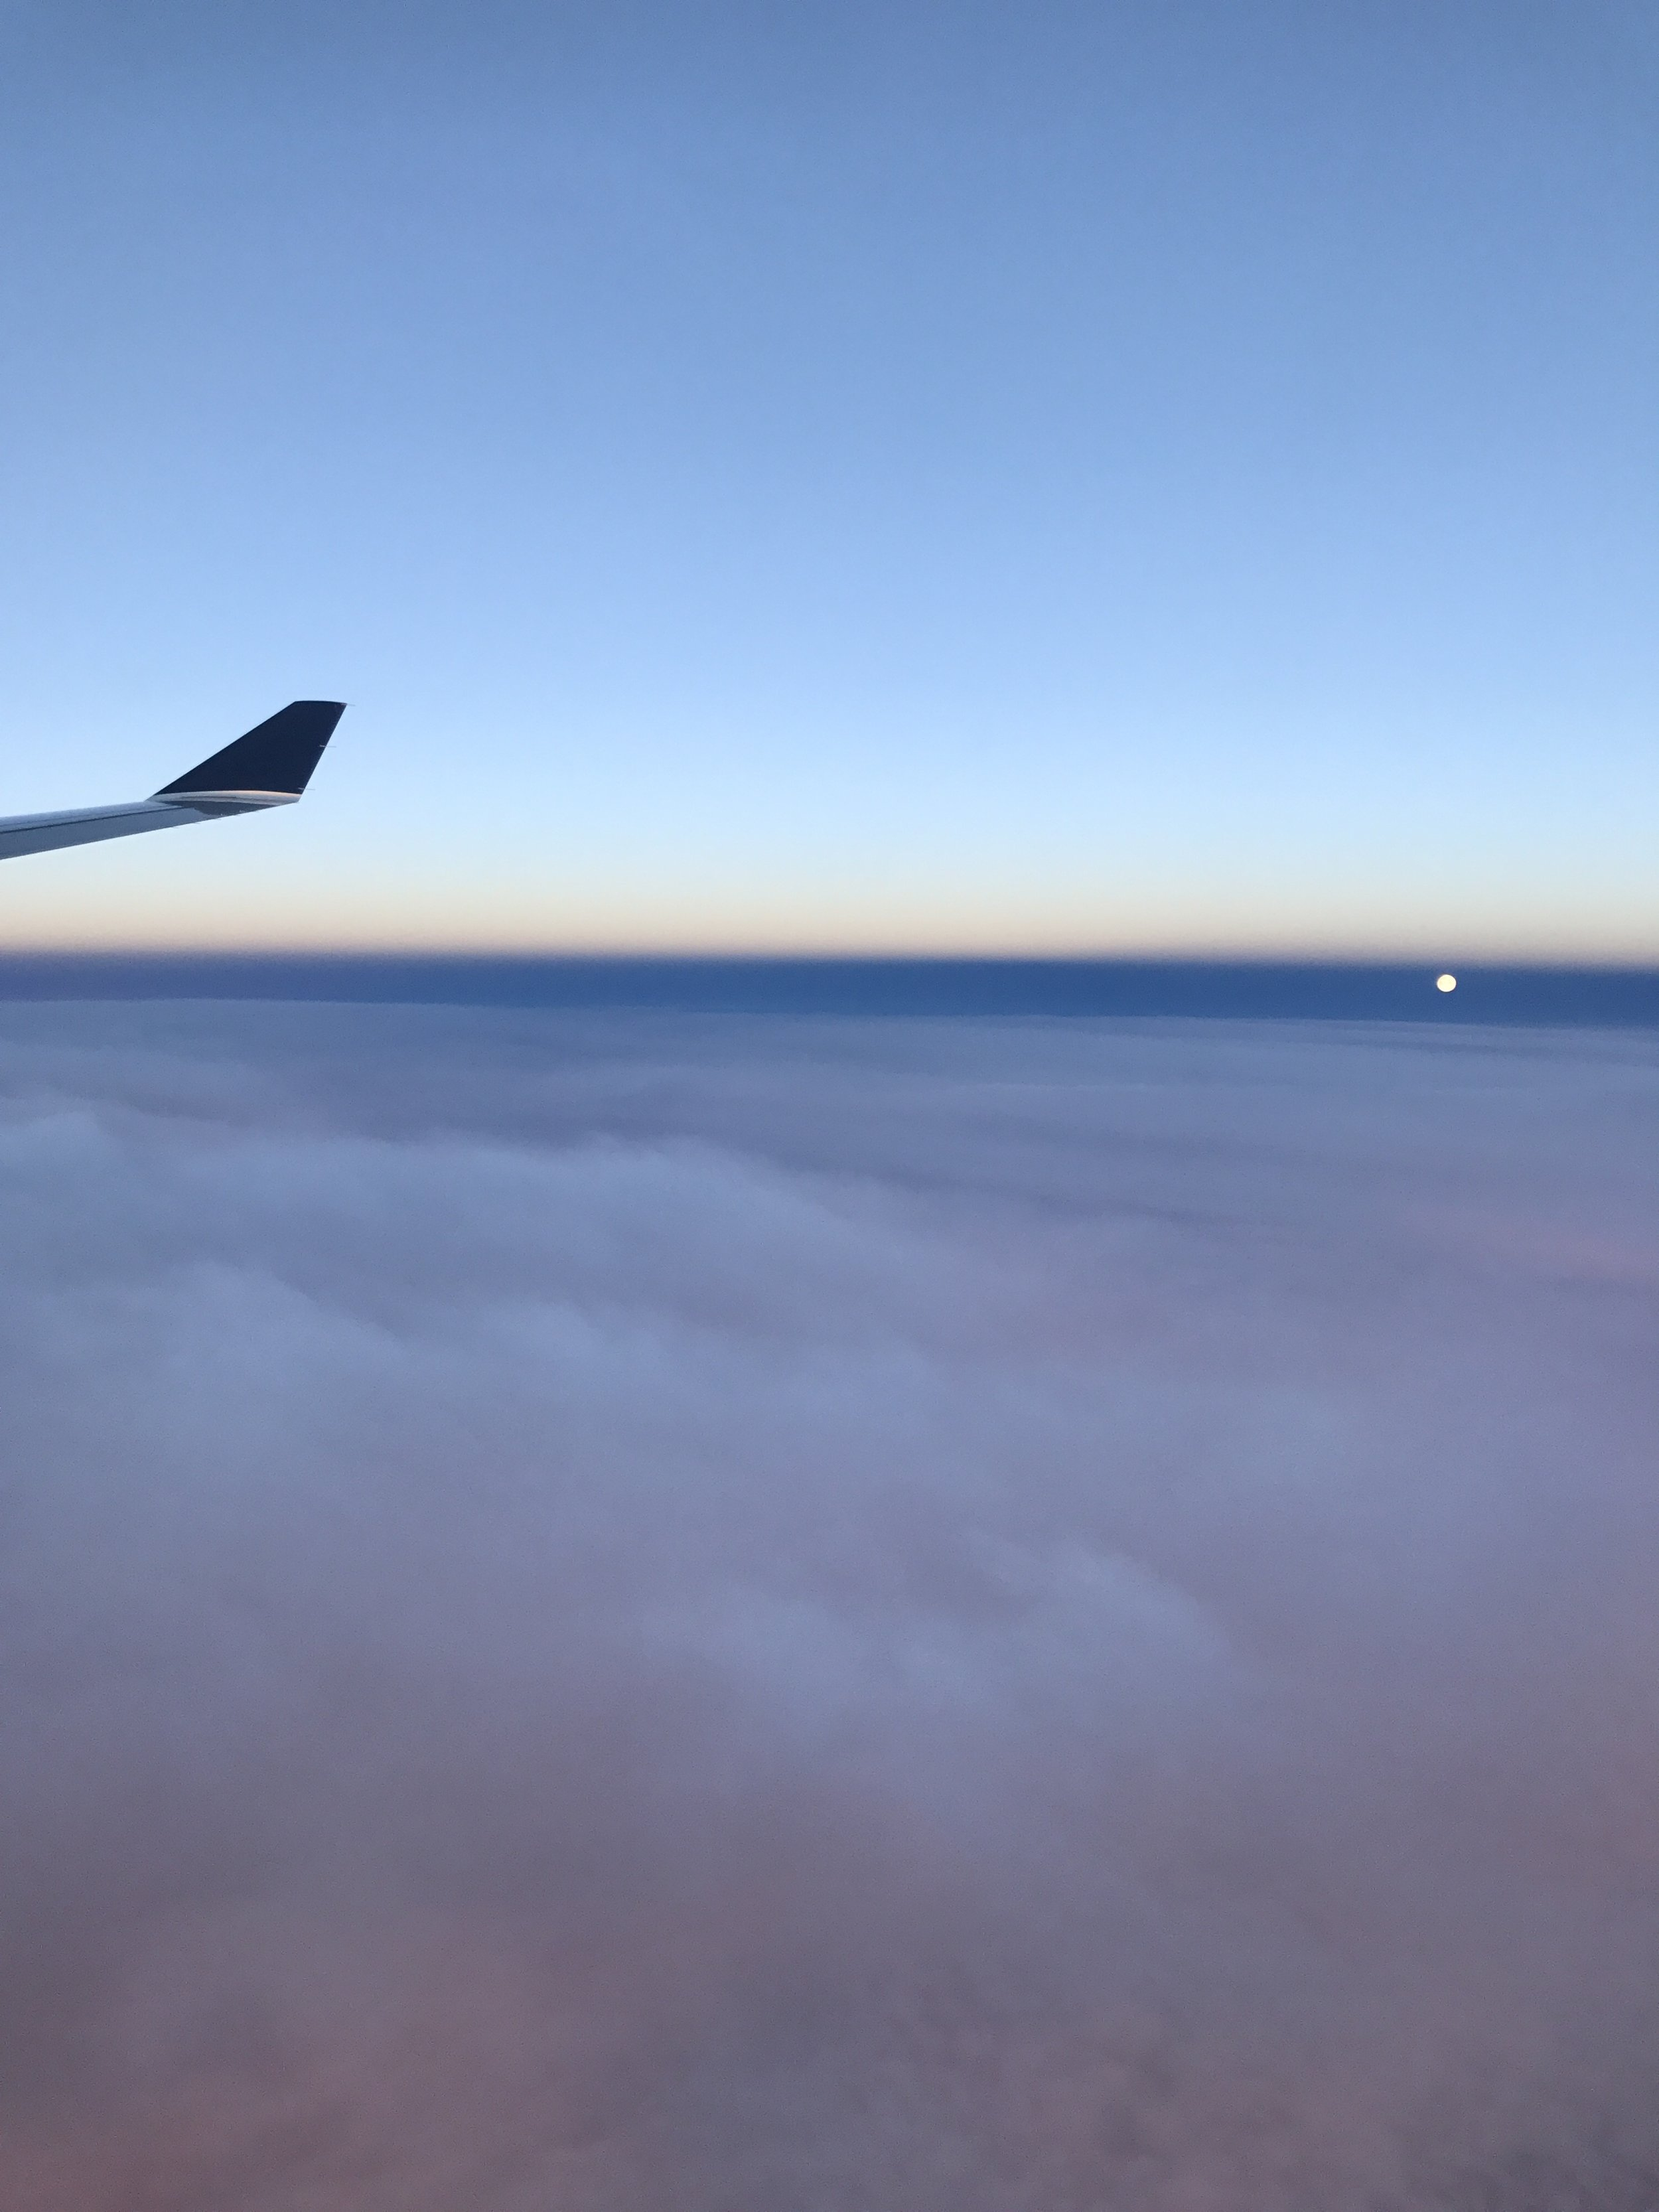 The moon went full at 8 am Paris time, just as we landed.